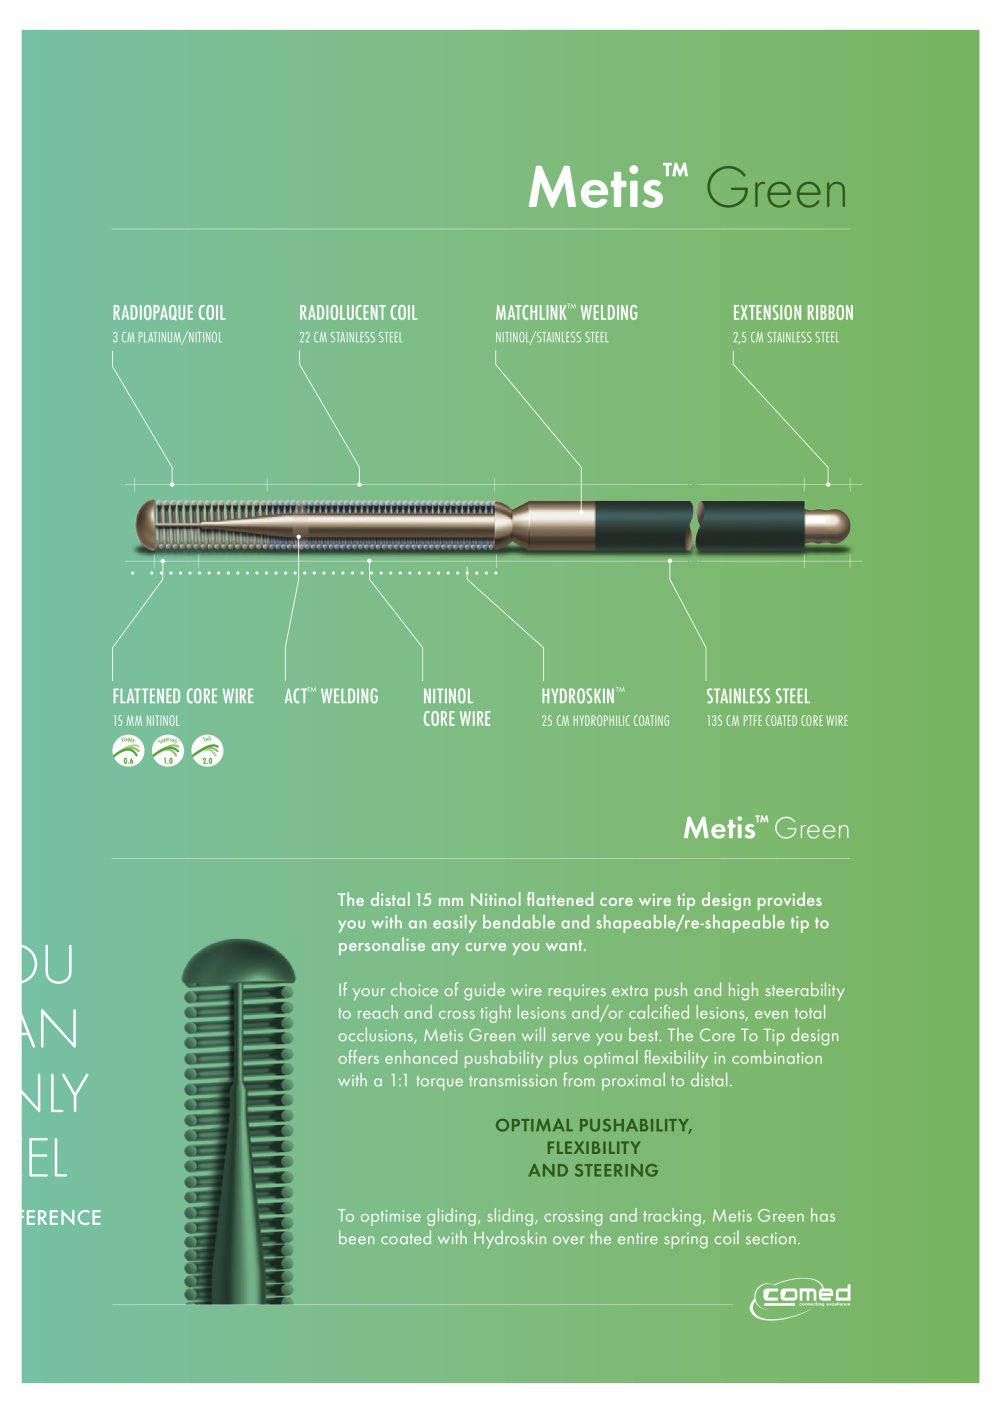 Metis Green Coronary Guide Wire - Comed - PDF Catalogue | Technical ...